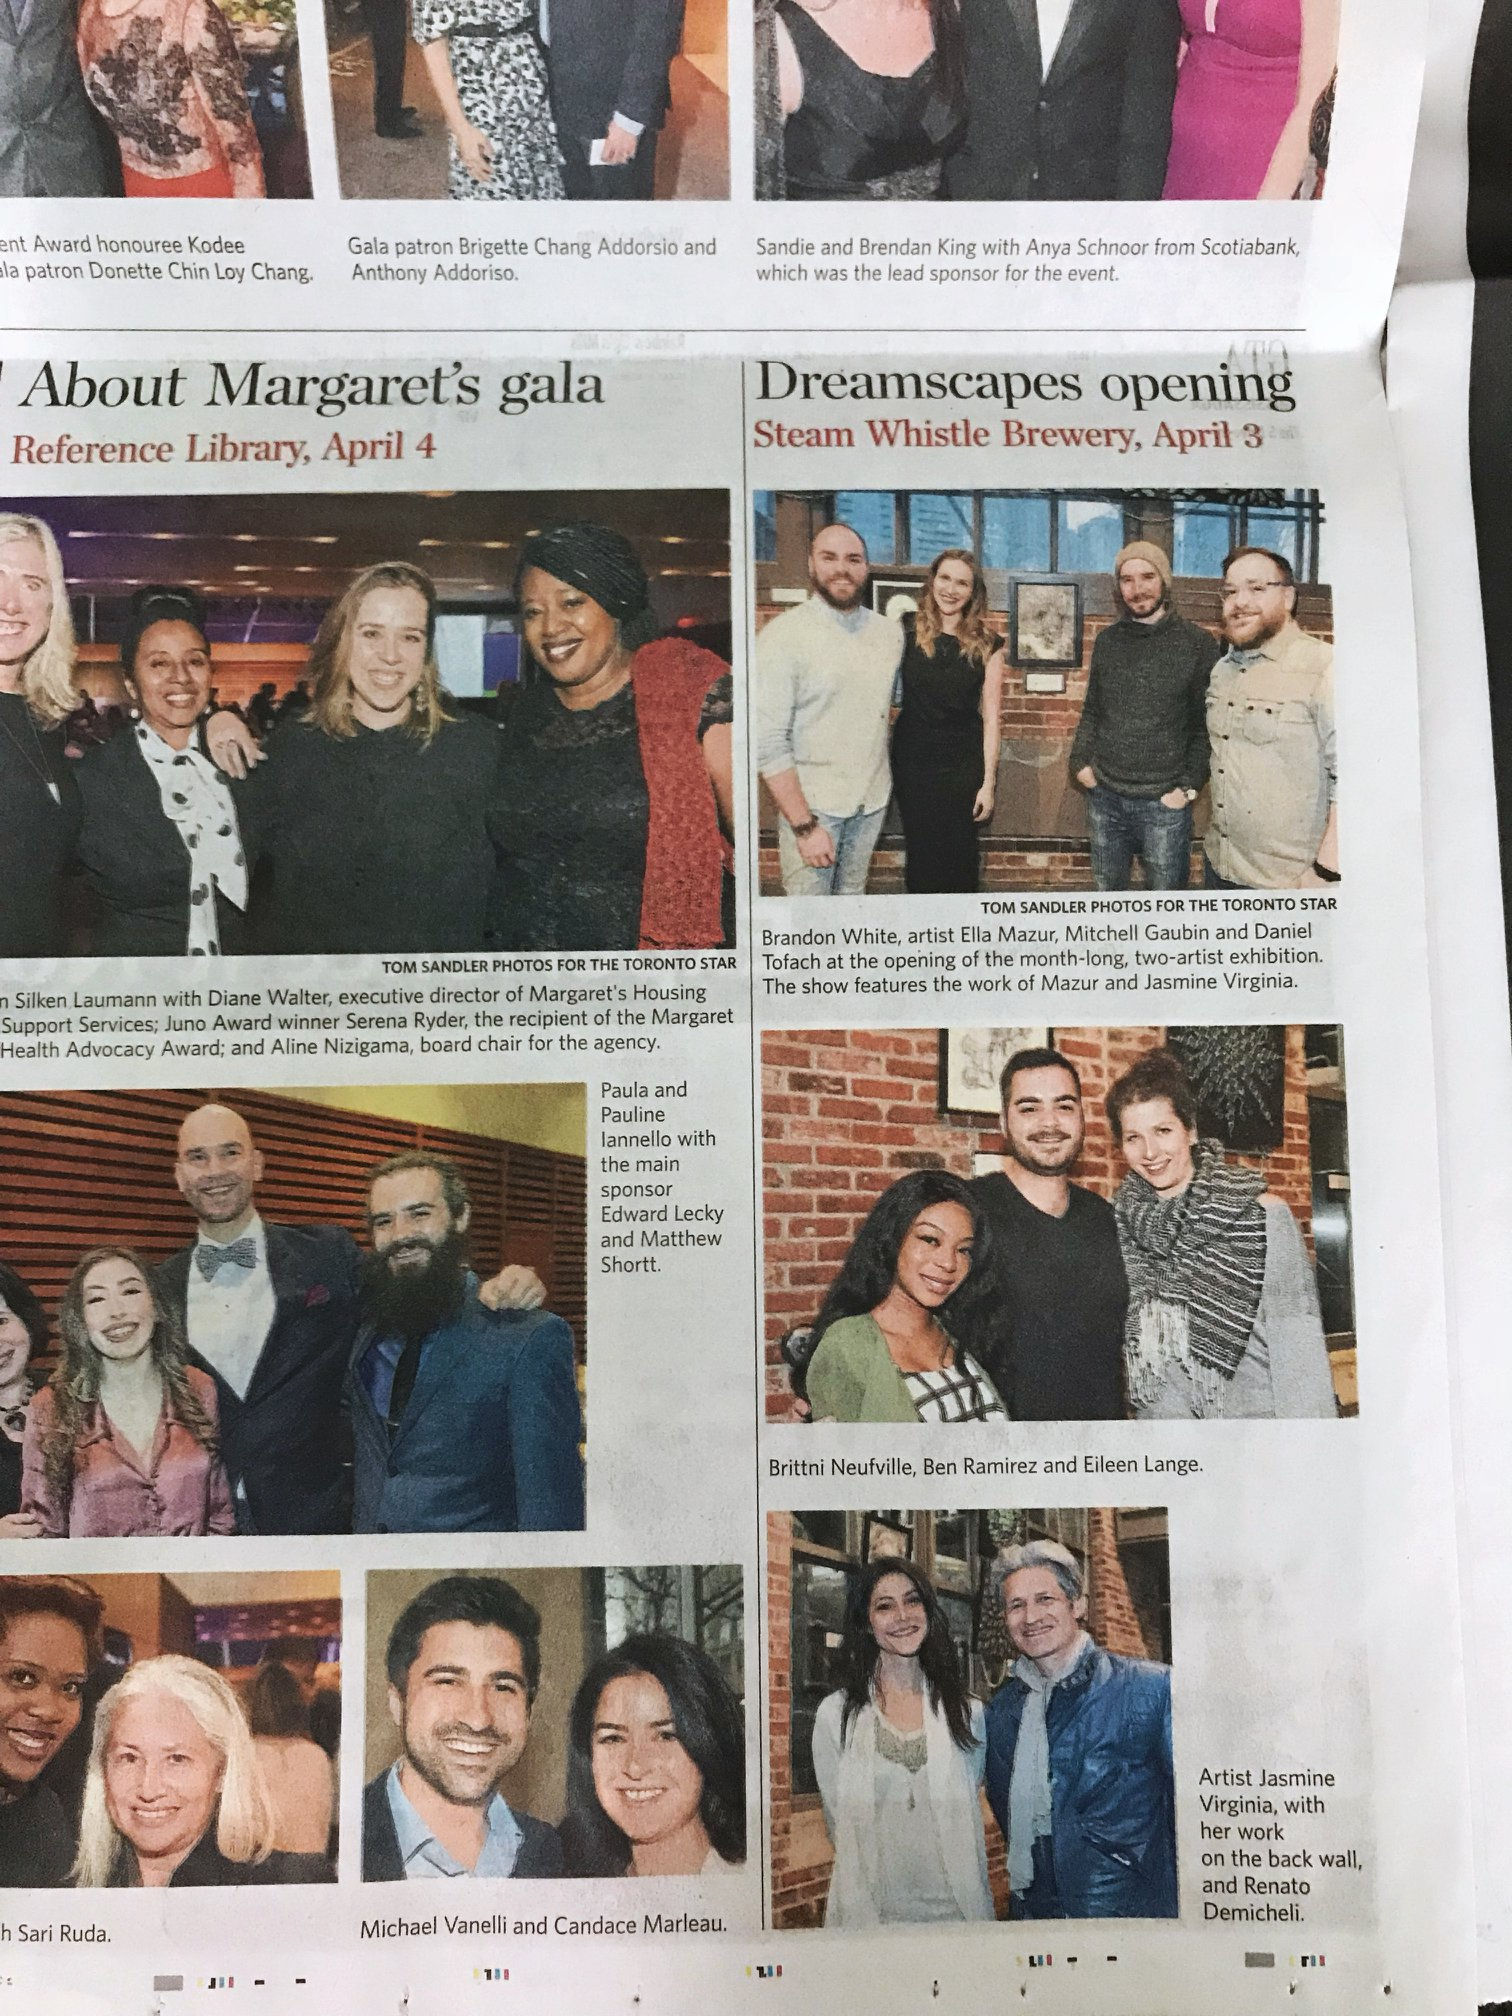 We were even featured in the Toronto Star!